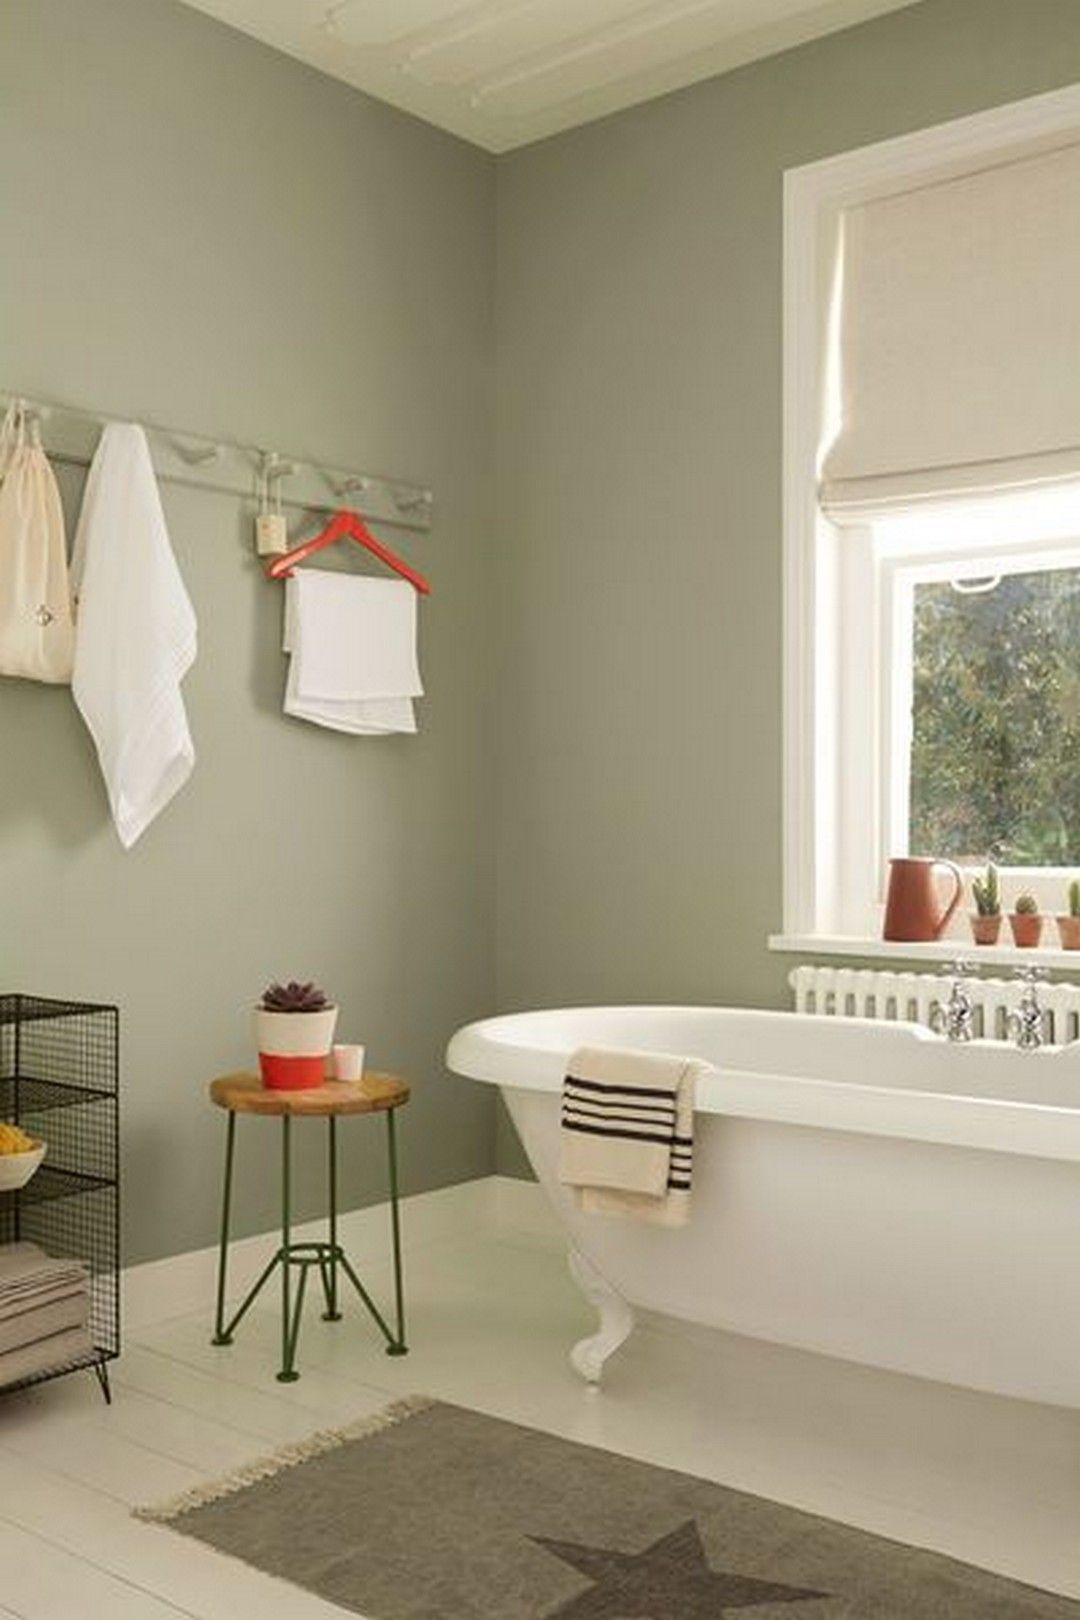 Bathroom Paint Colors Trend To Refresh Your Bathroom Display 2018 ...